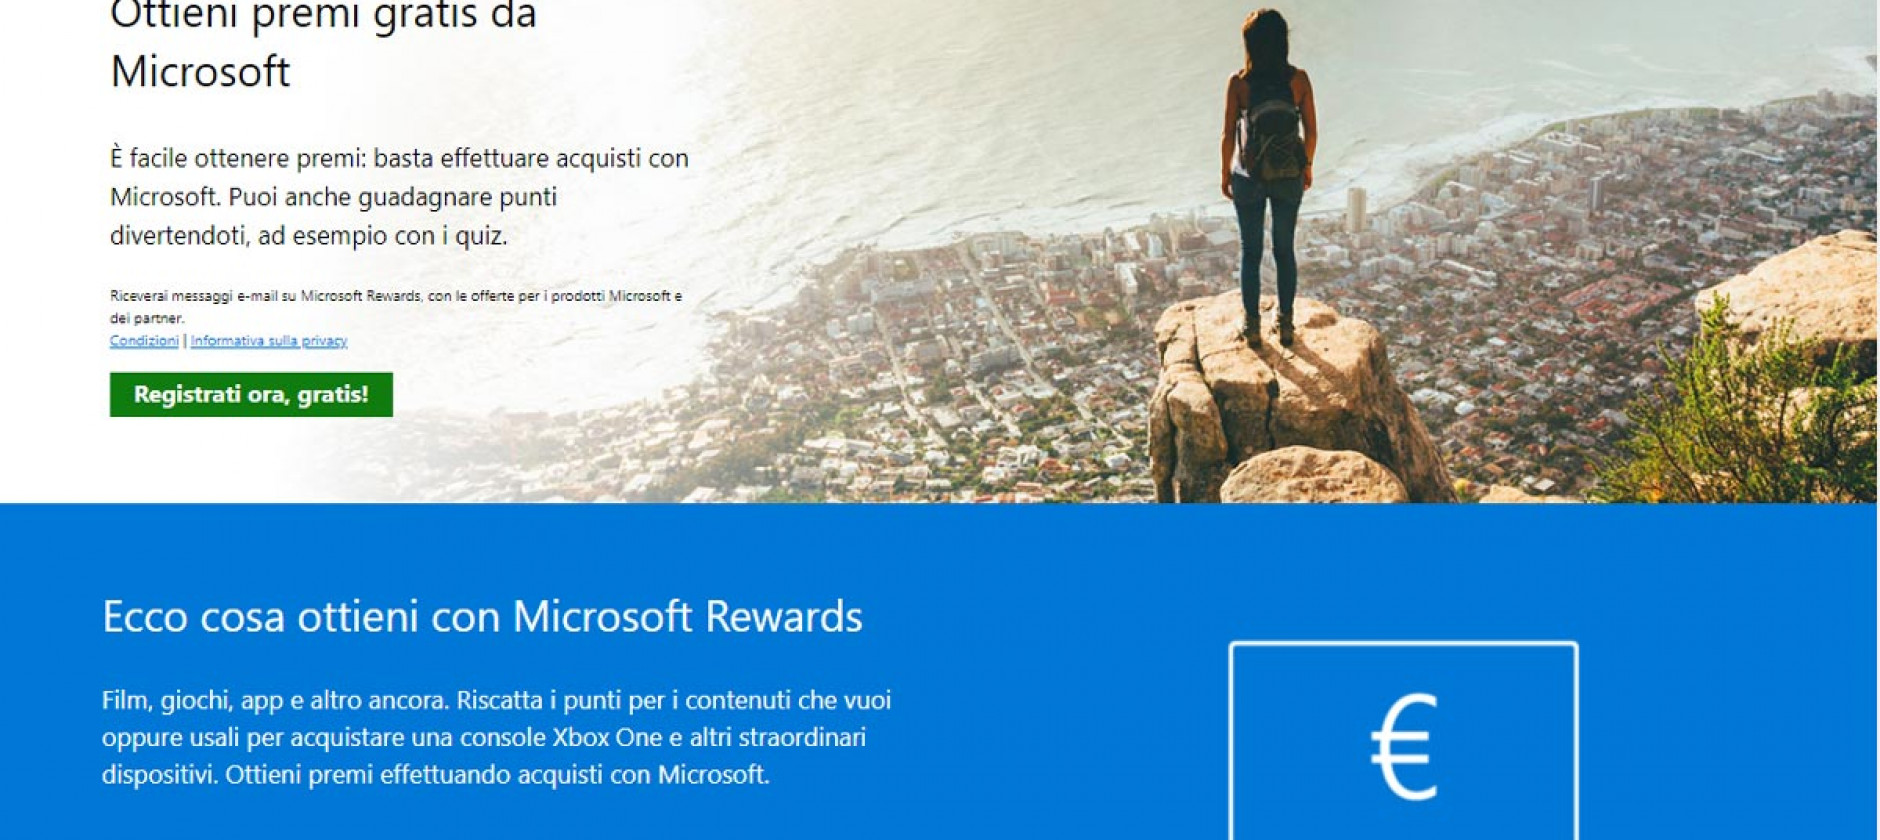 Microsoft Rewards arriva in Italia